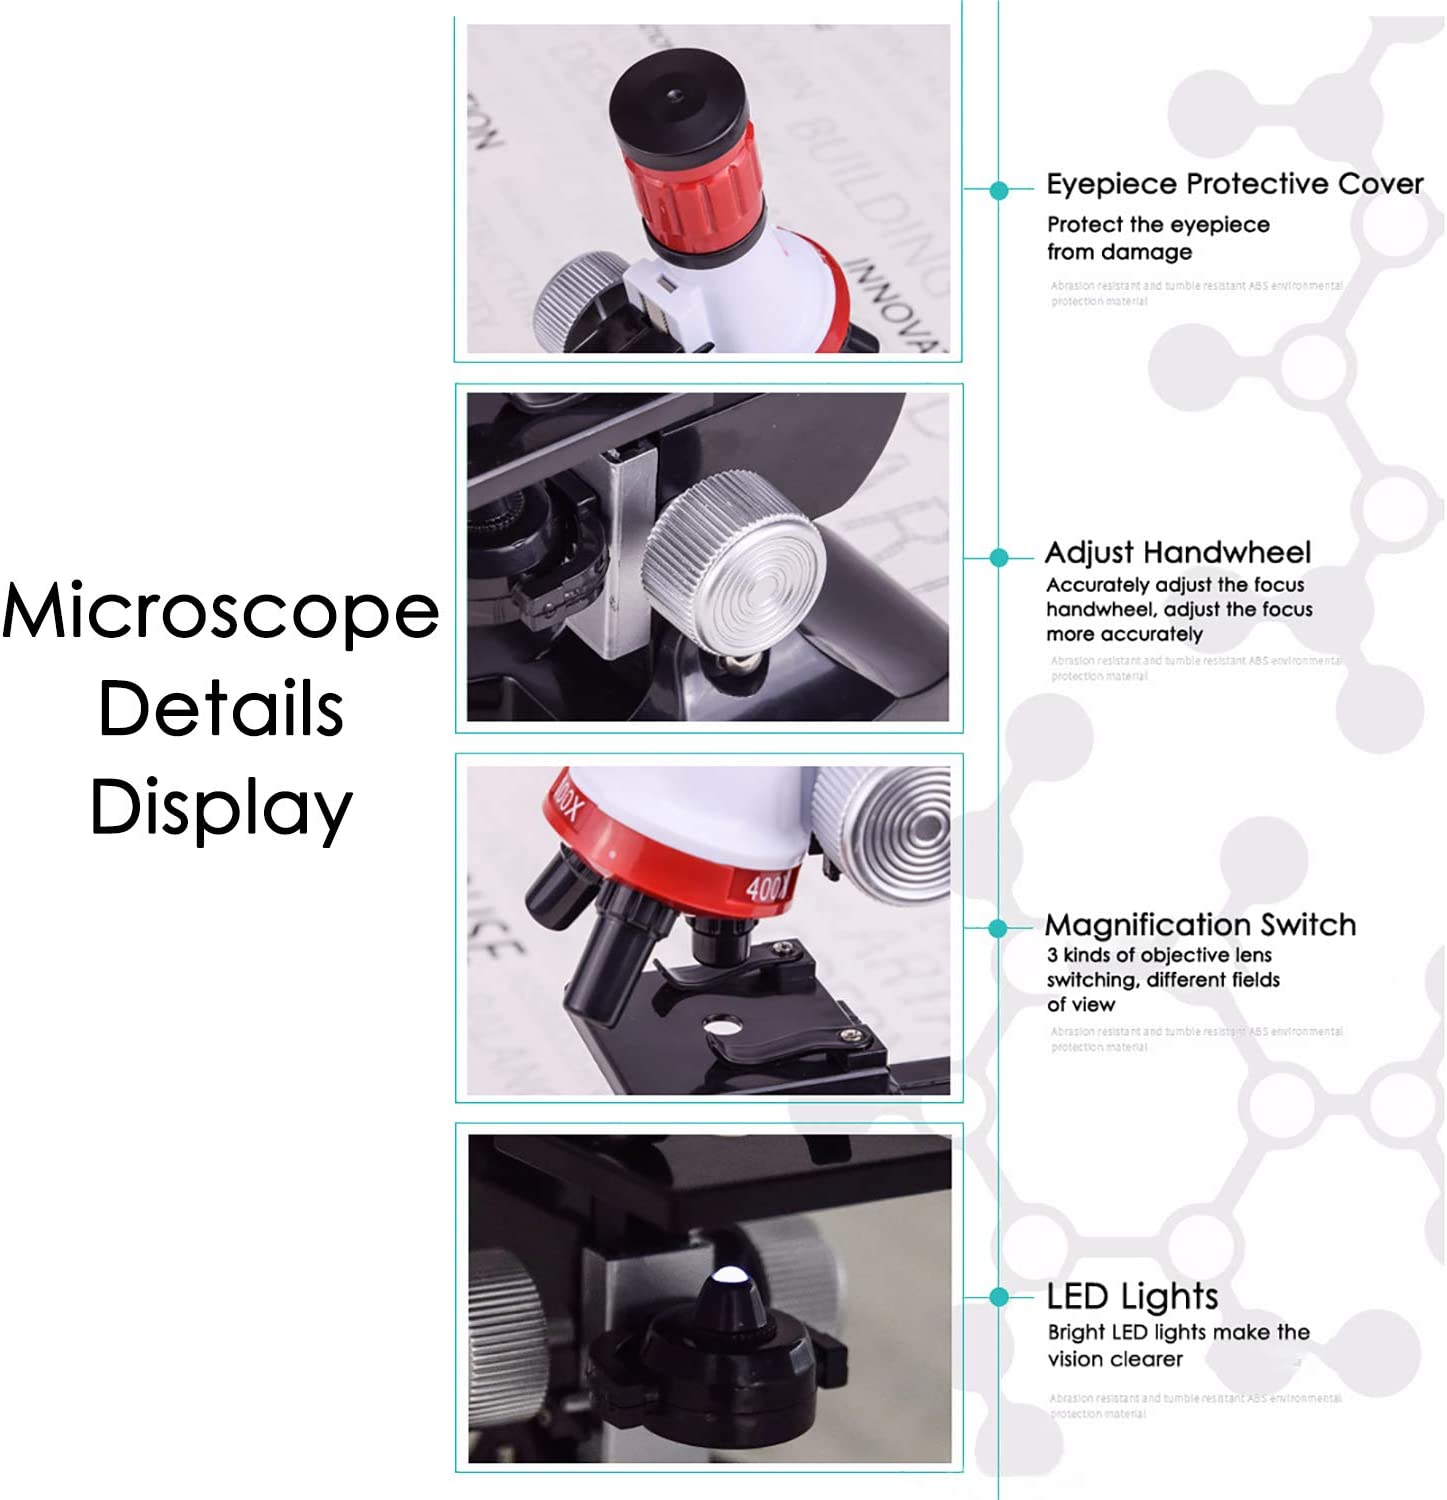 Including Animals Basic Biology Education and Science Exhibition Projects for Children and Students TooFu 48 Pcs Microscope Slides and Vegetable Specimens Plants Insects